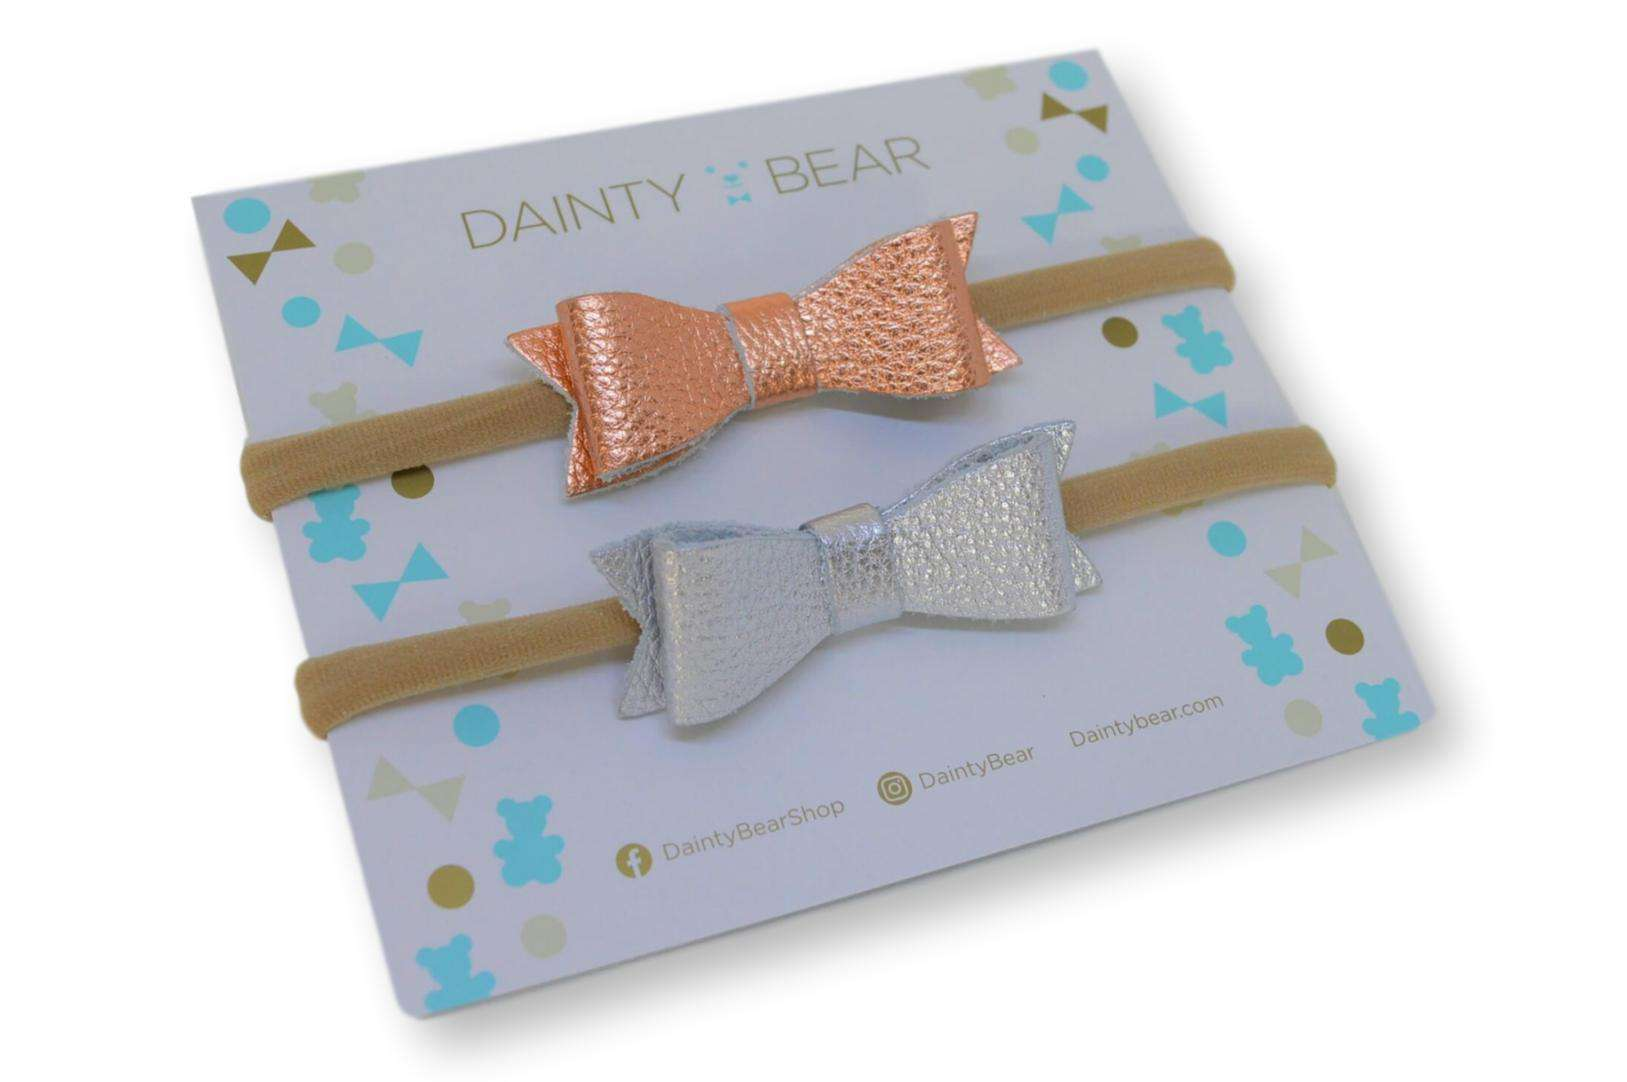 Rose Gold and Silver Leather Bow Hairband - Dainty Bear